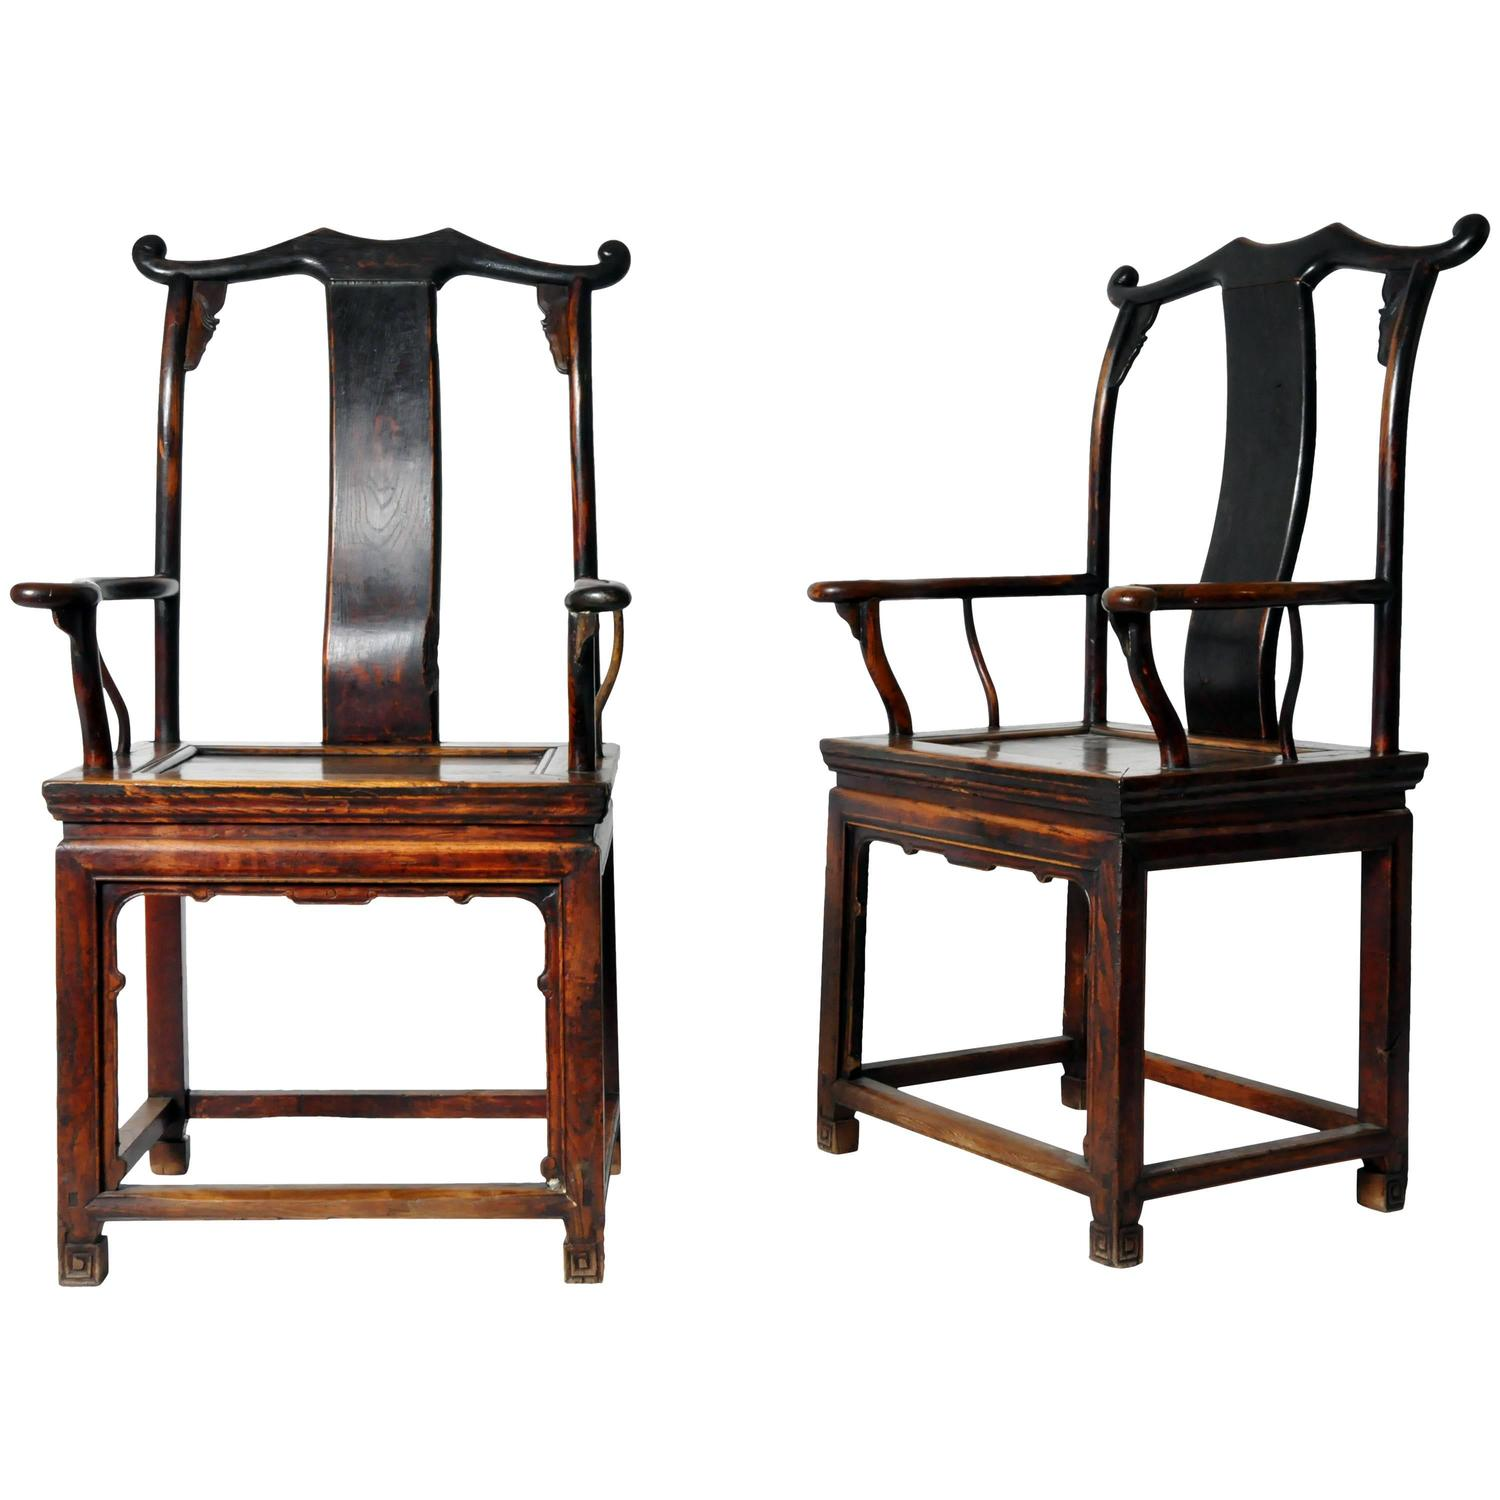 Pair of ming dynasty style yoke back armchairs for sale at for Chinese style furniture for sale